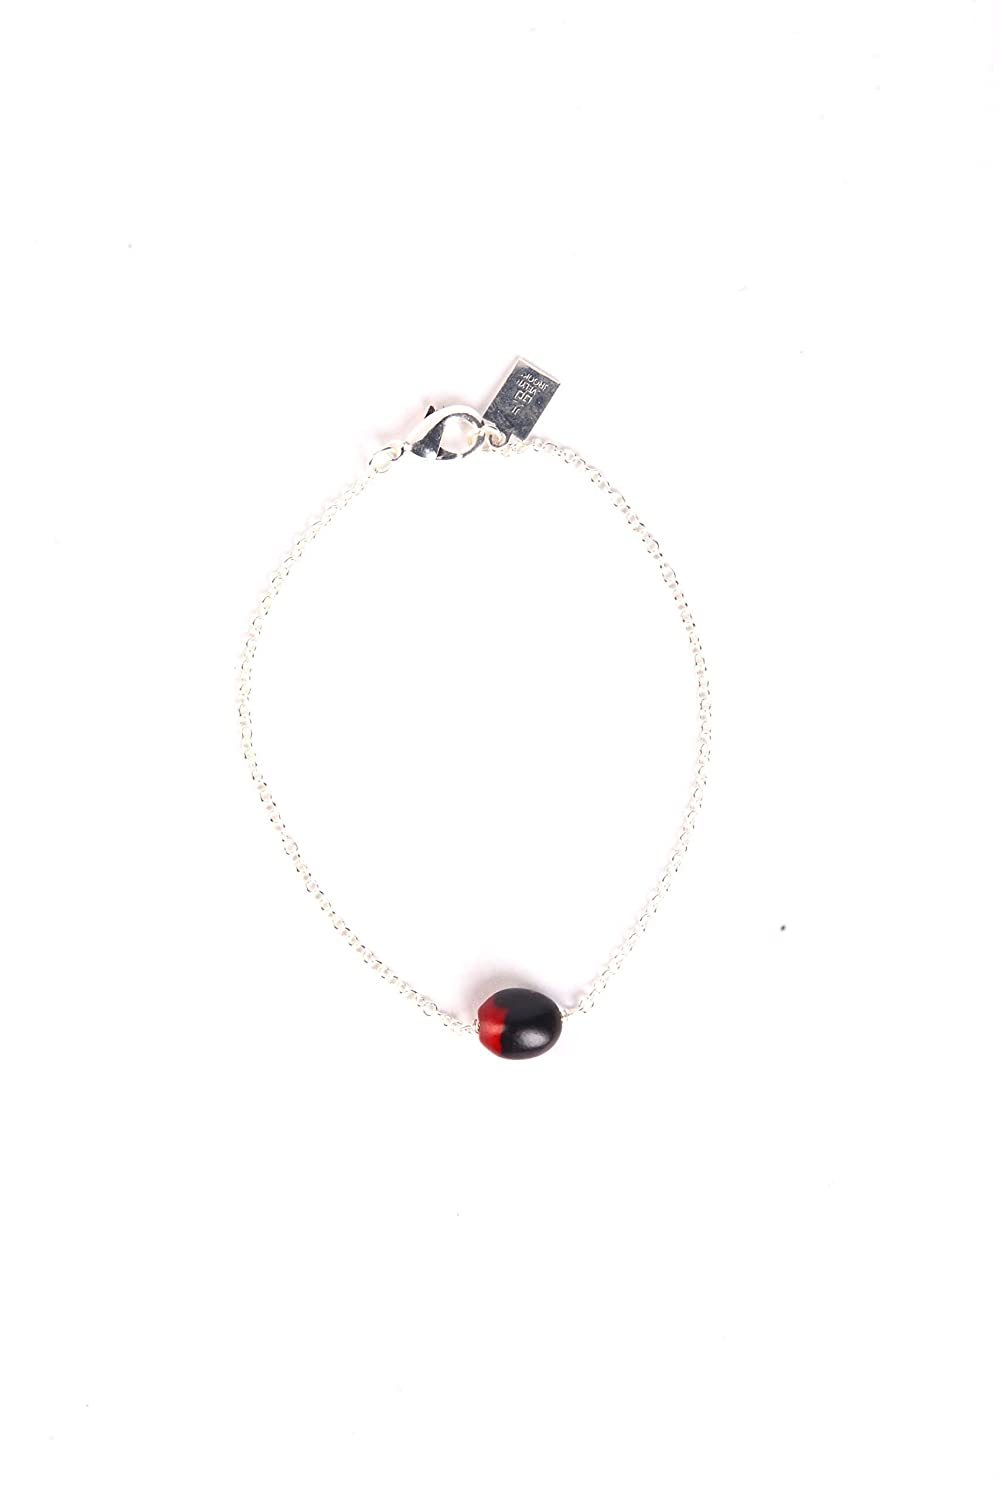 Eco Friendly Peruvian Gift Bracelet for Women - Huayruro Red Black Seed, Silver Beads - Natural Handmade Jewelry by Evelyn Brooks